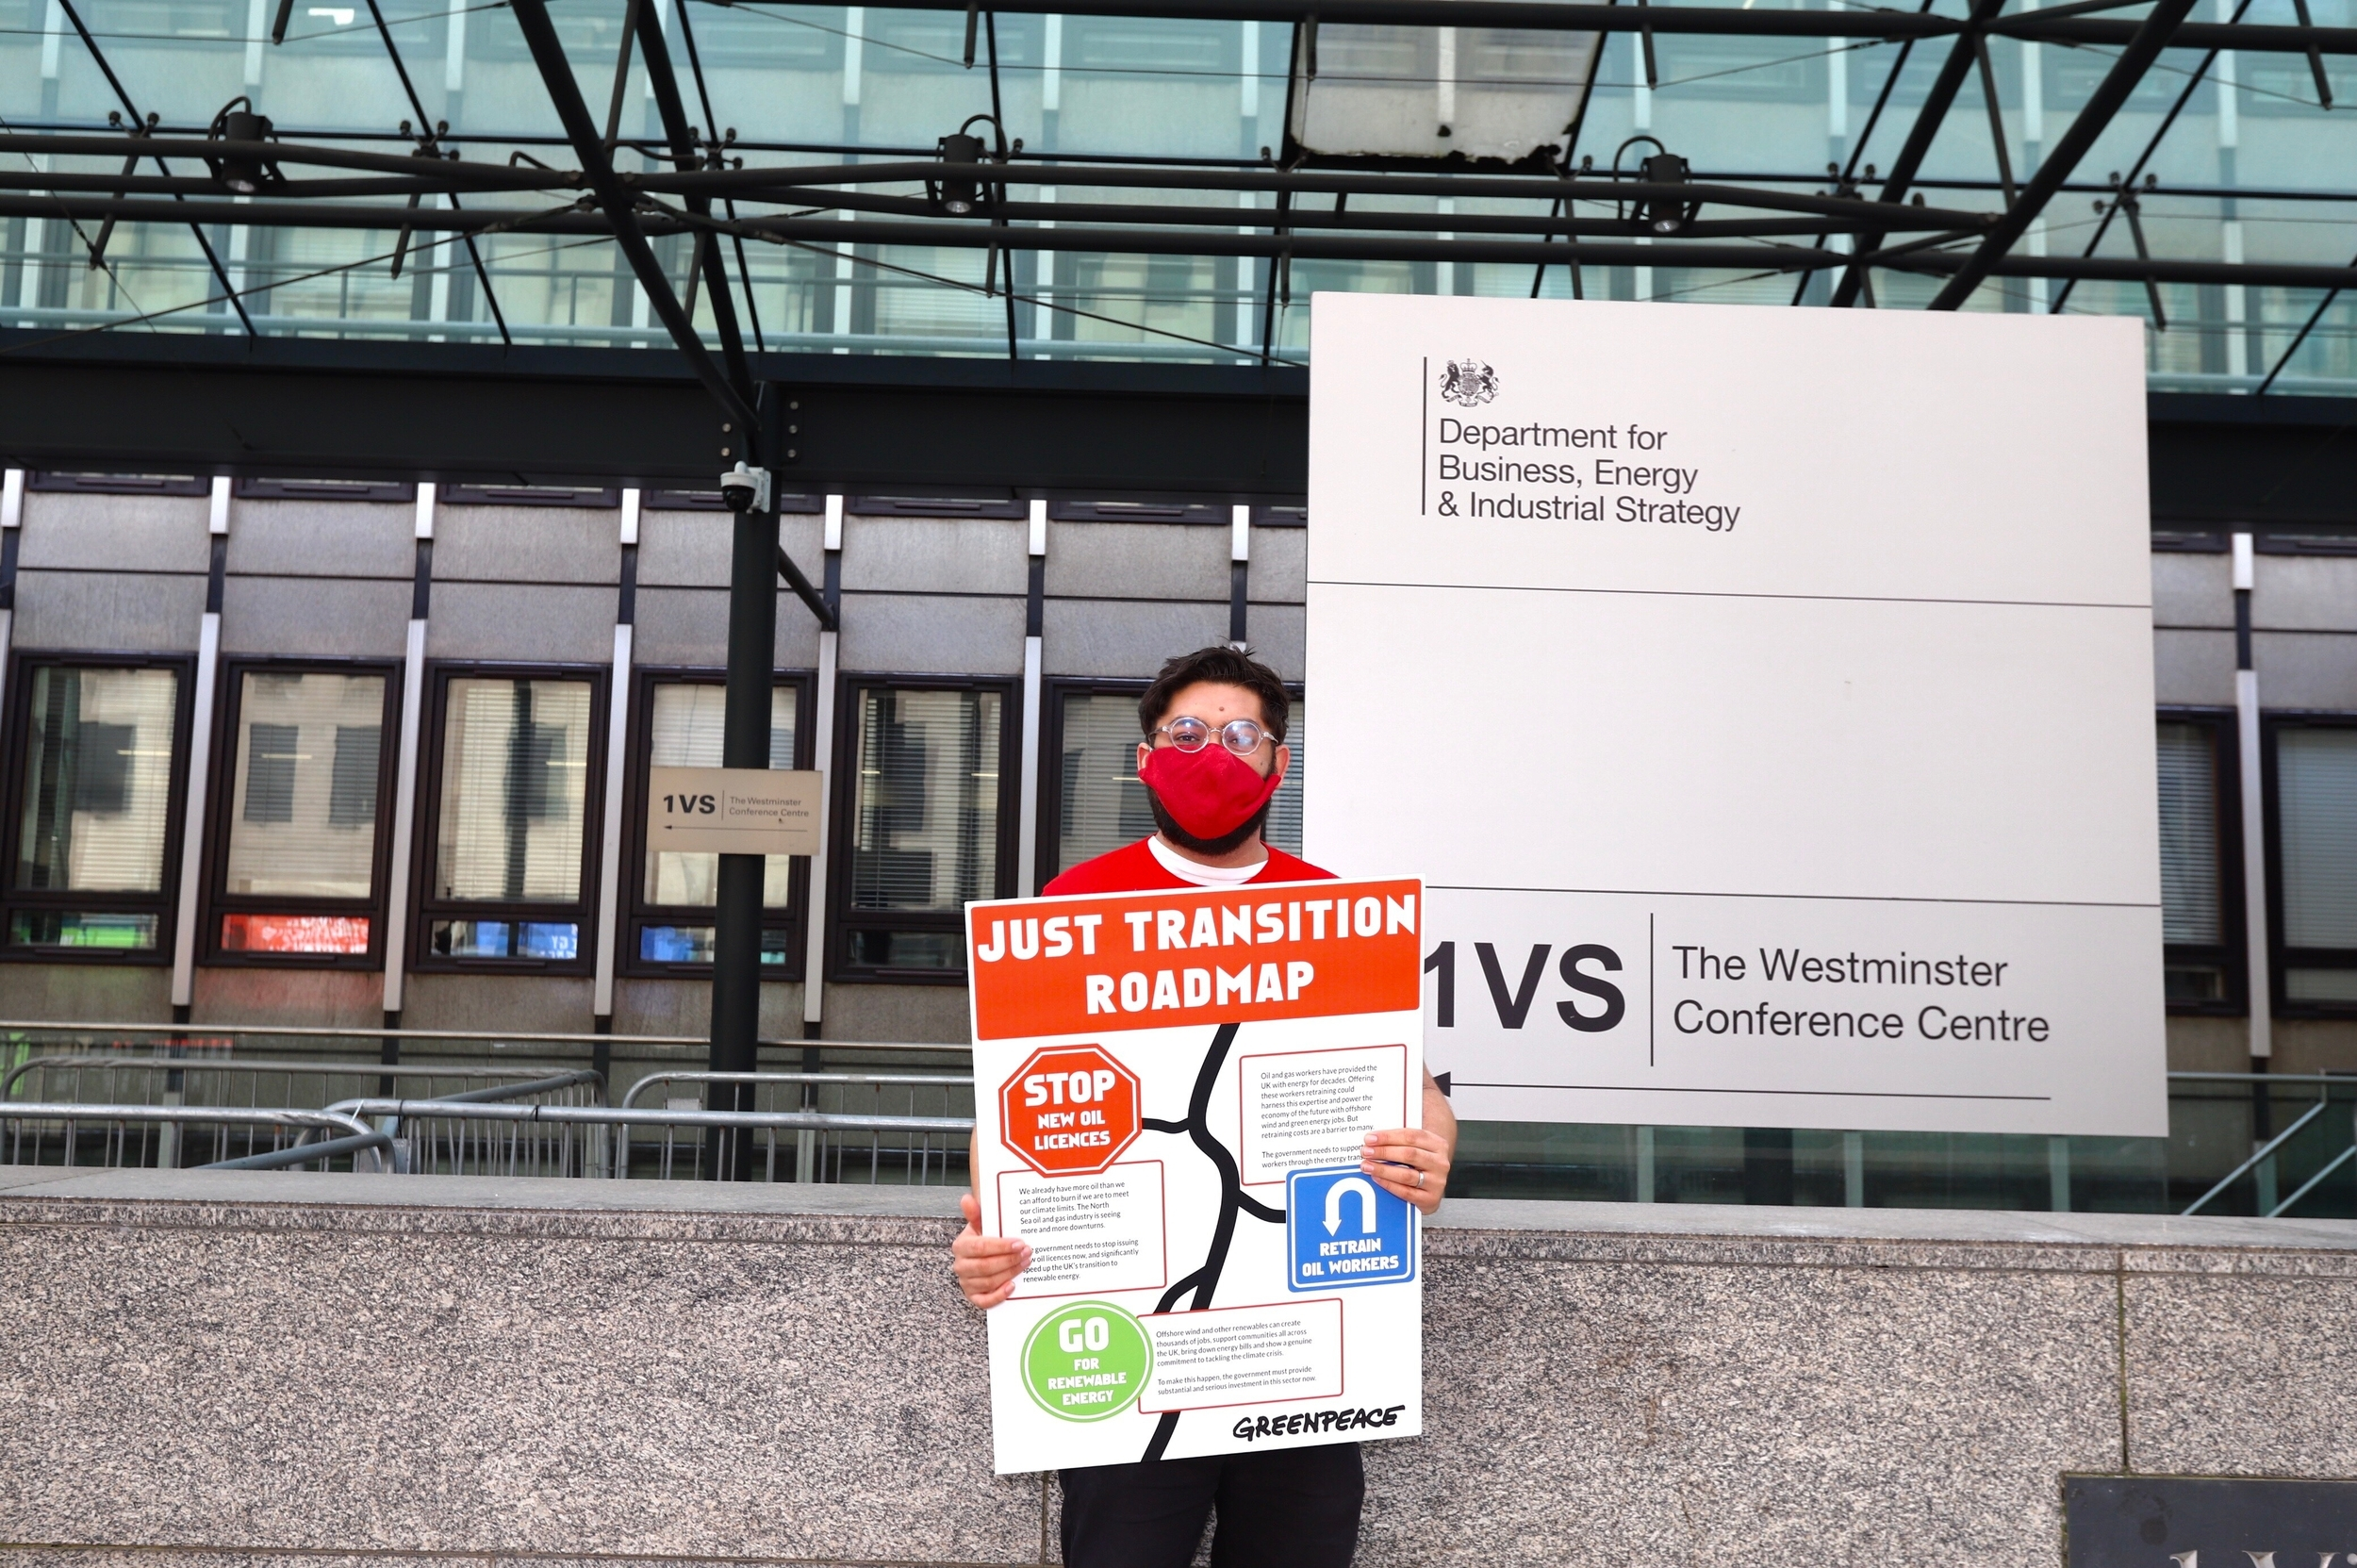 A man stands outside the BEIS department, holding a poster reading 'Just transition roadmap' with 'Stop new oil licenses' and'Invest in renewable energy' on signs that mimic road signs, with arrows in between.'